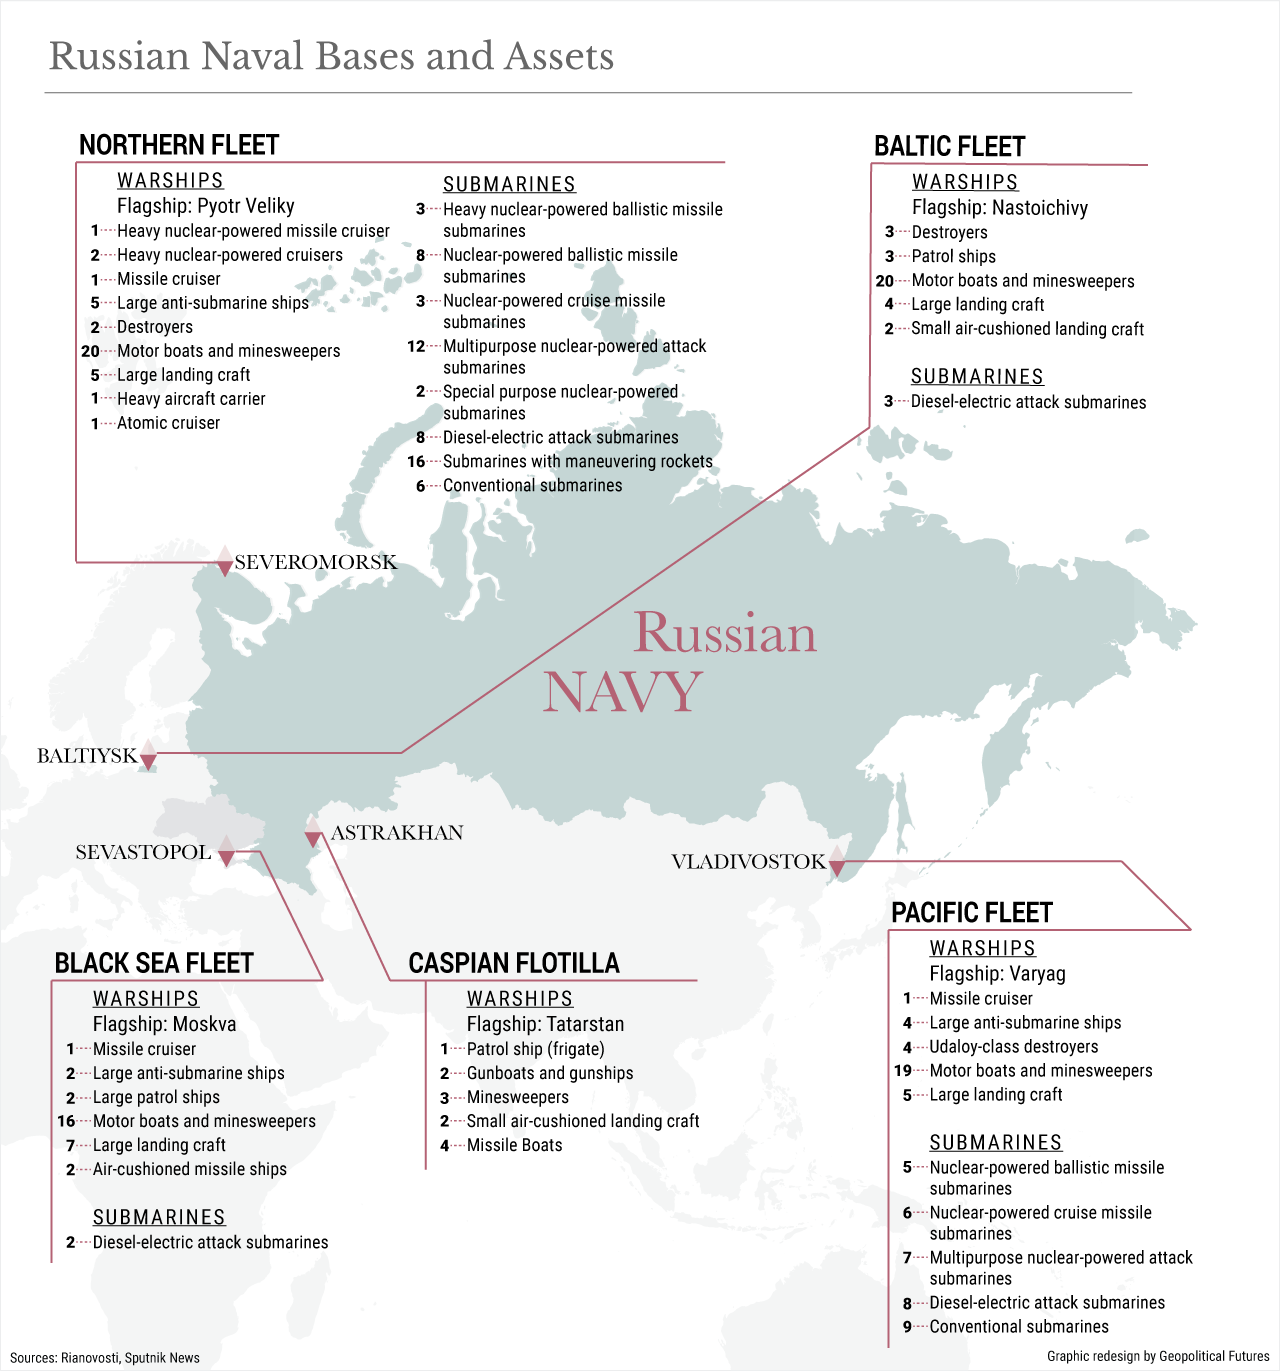 Russian Naval Bases and Assets